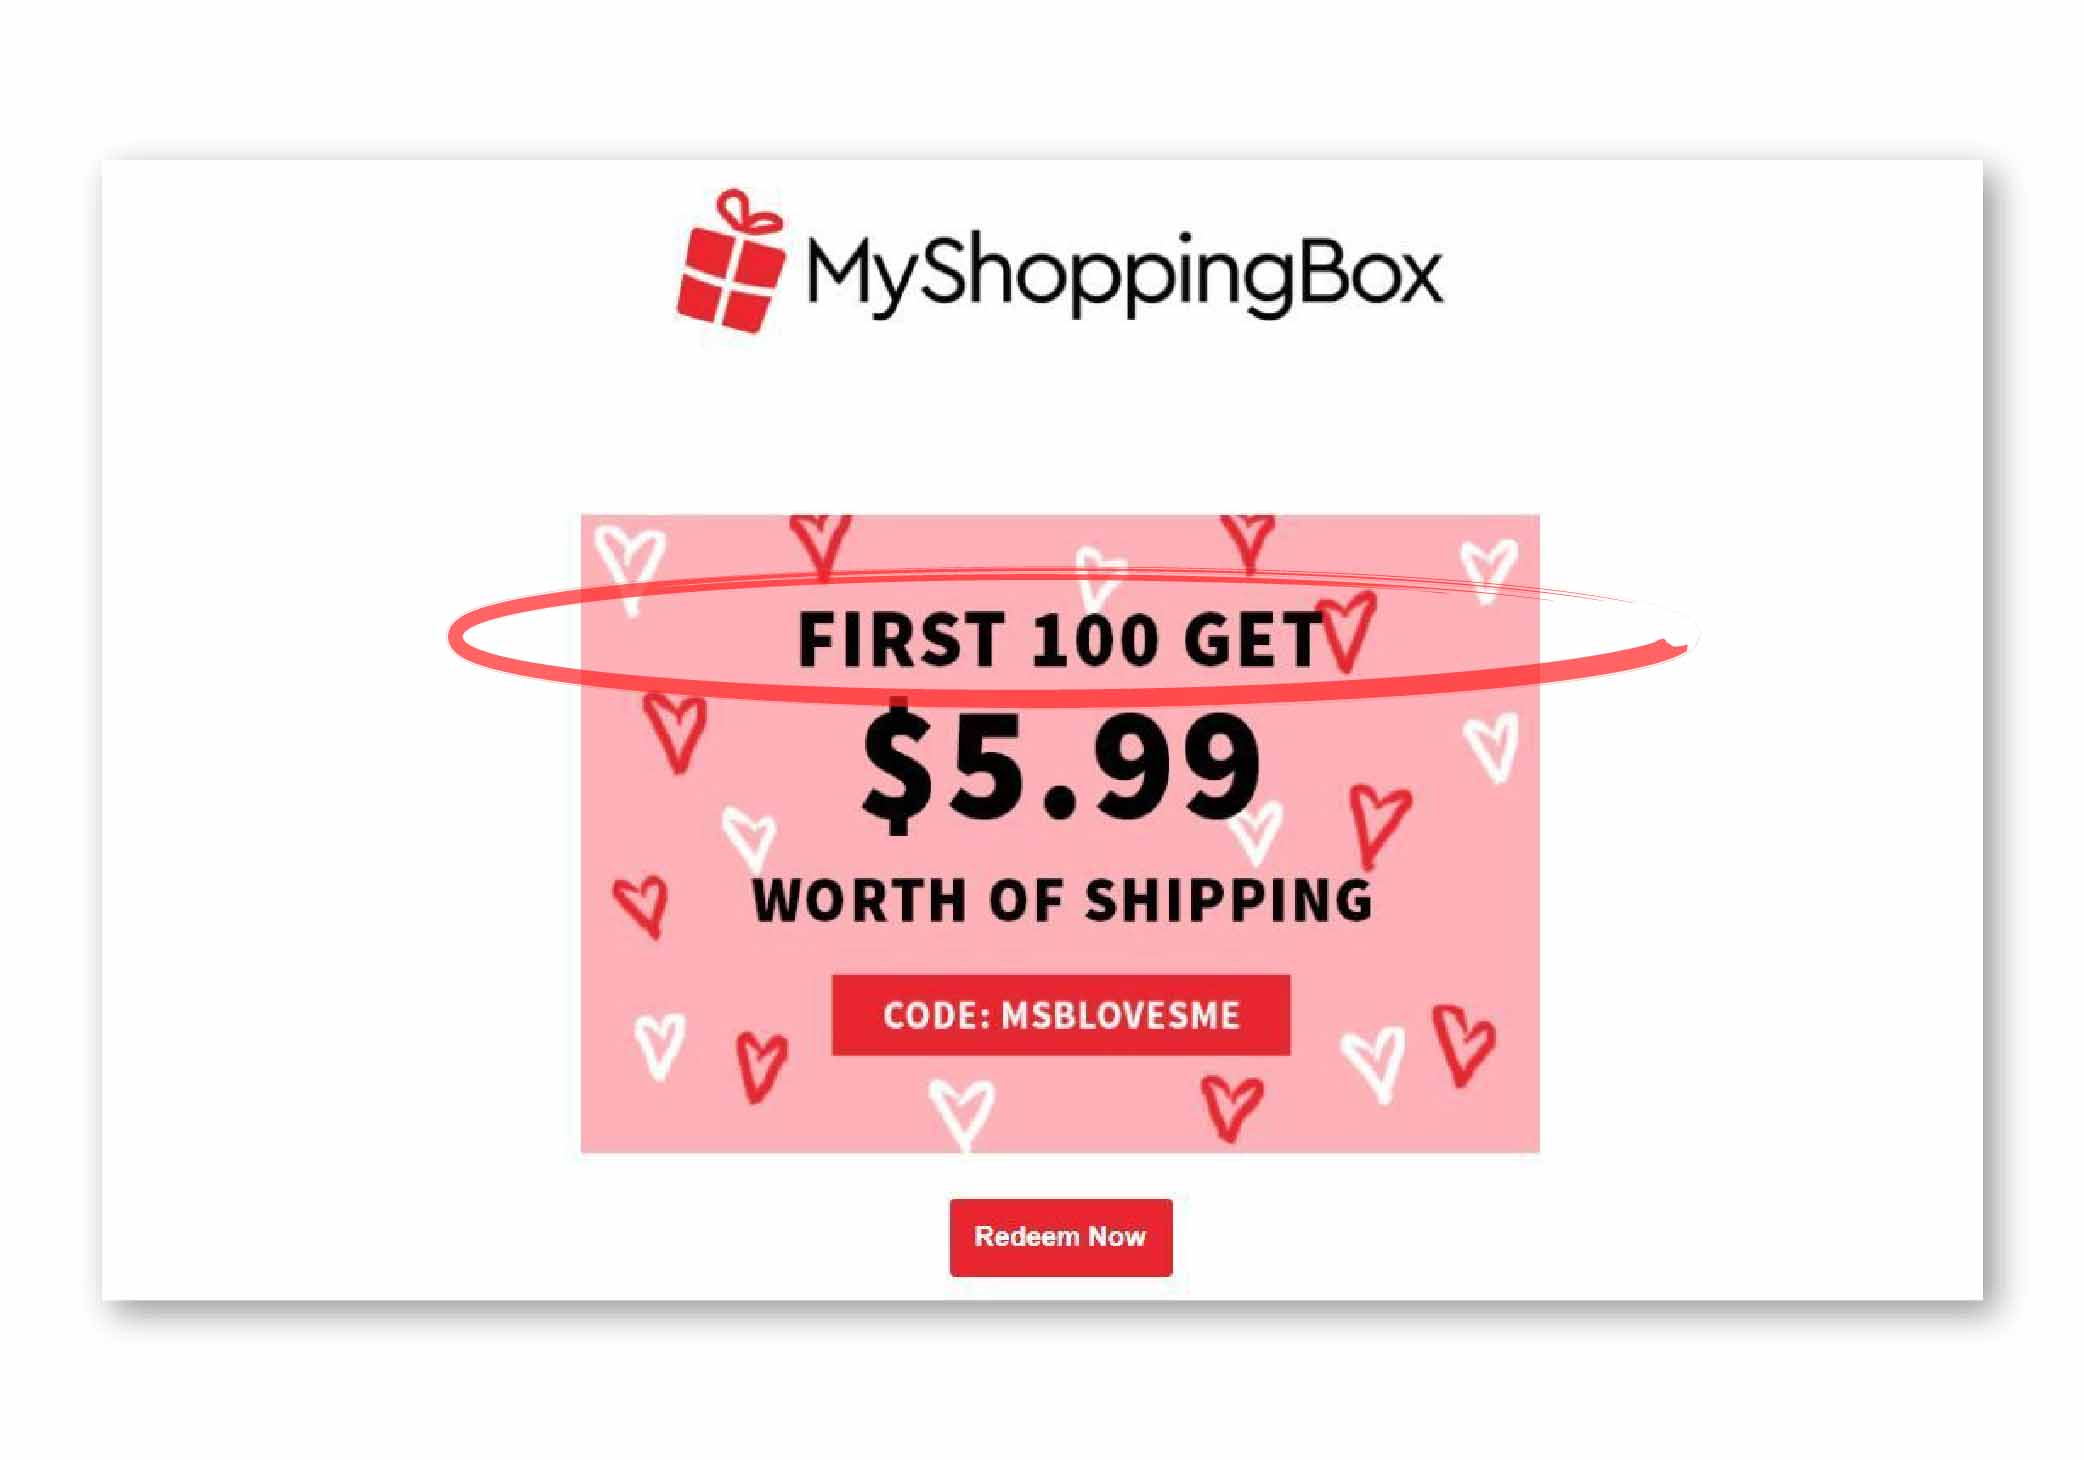 behavioralne principy MyShoppingBox